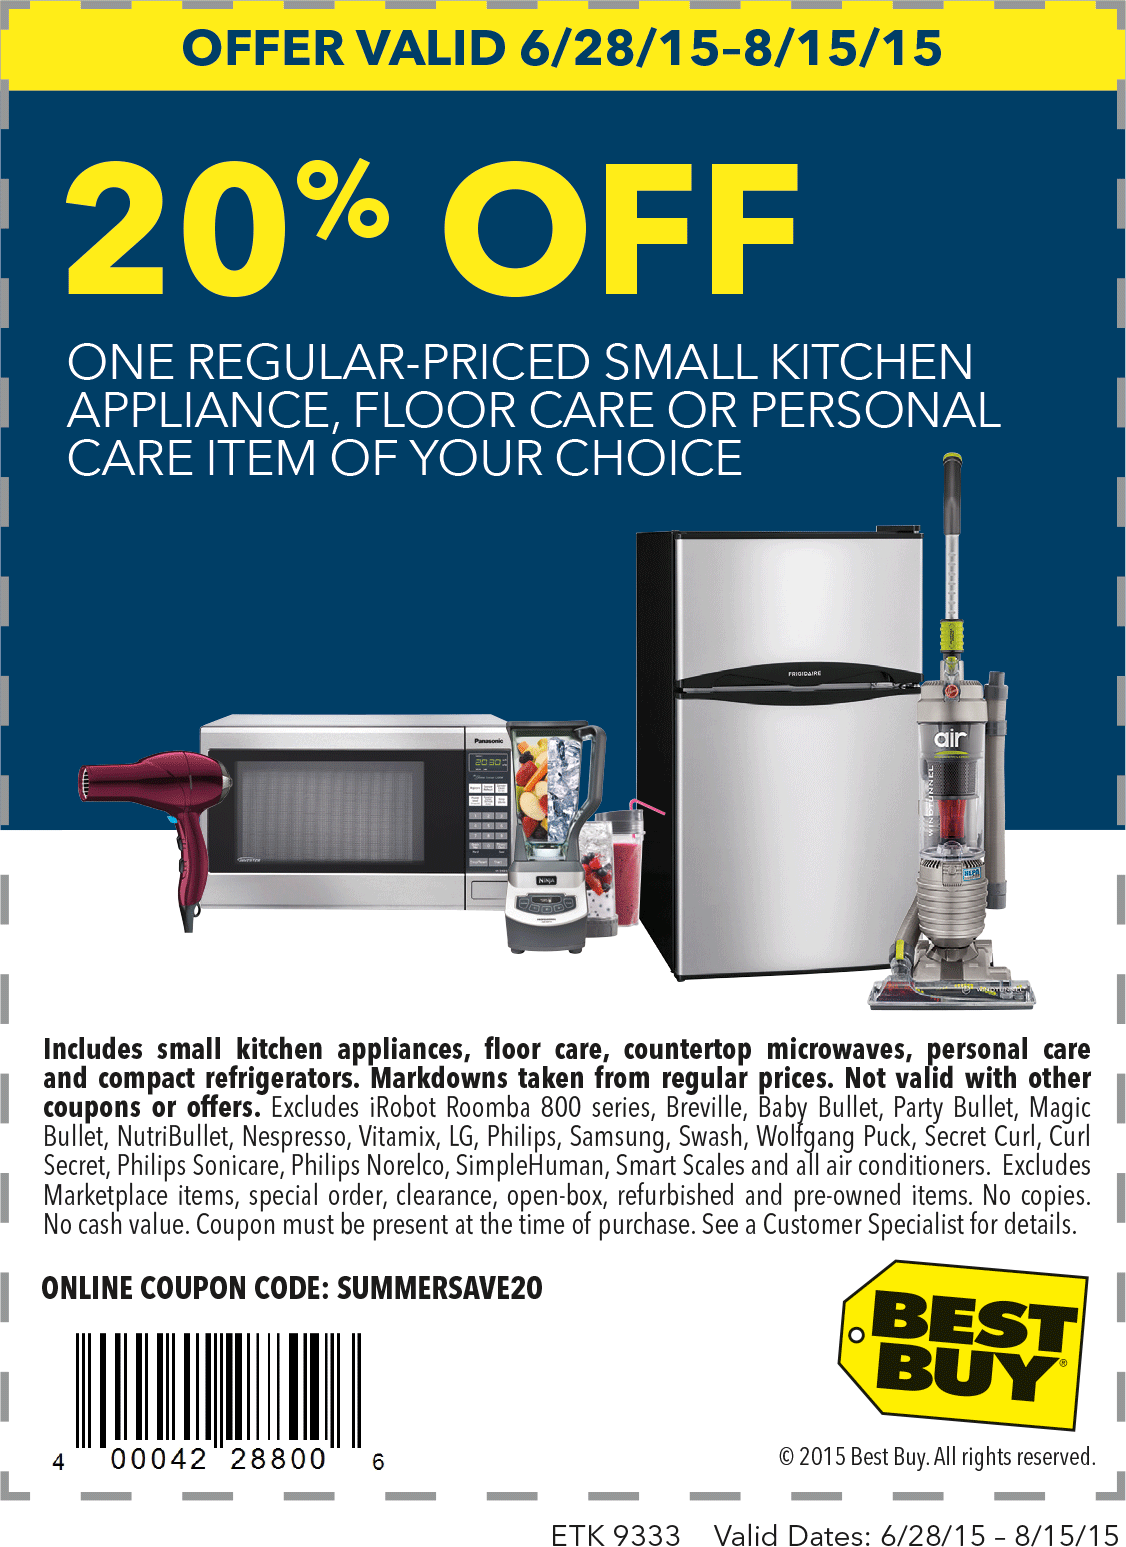 Best Buy Coupon July 2018 20% off a small appliance at Best Buy, or online via promo code SUMMERSAVE20